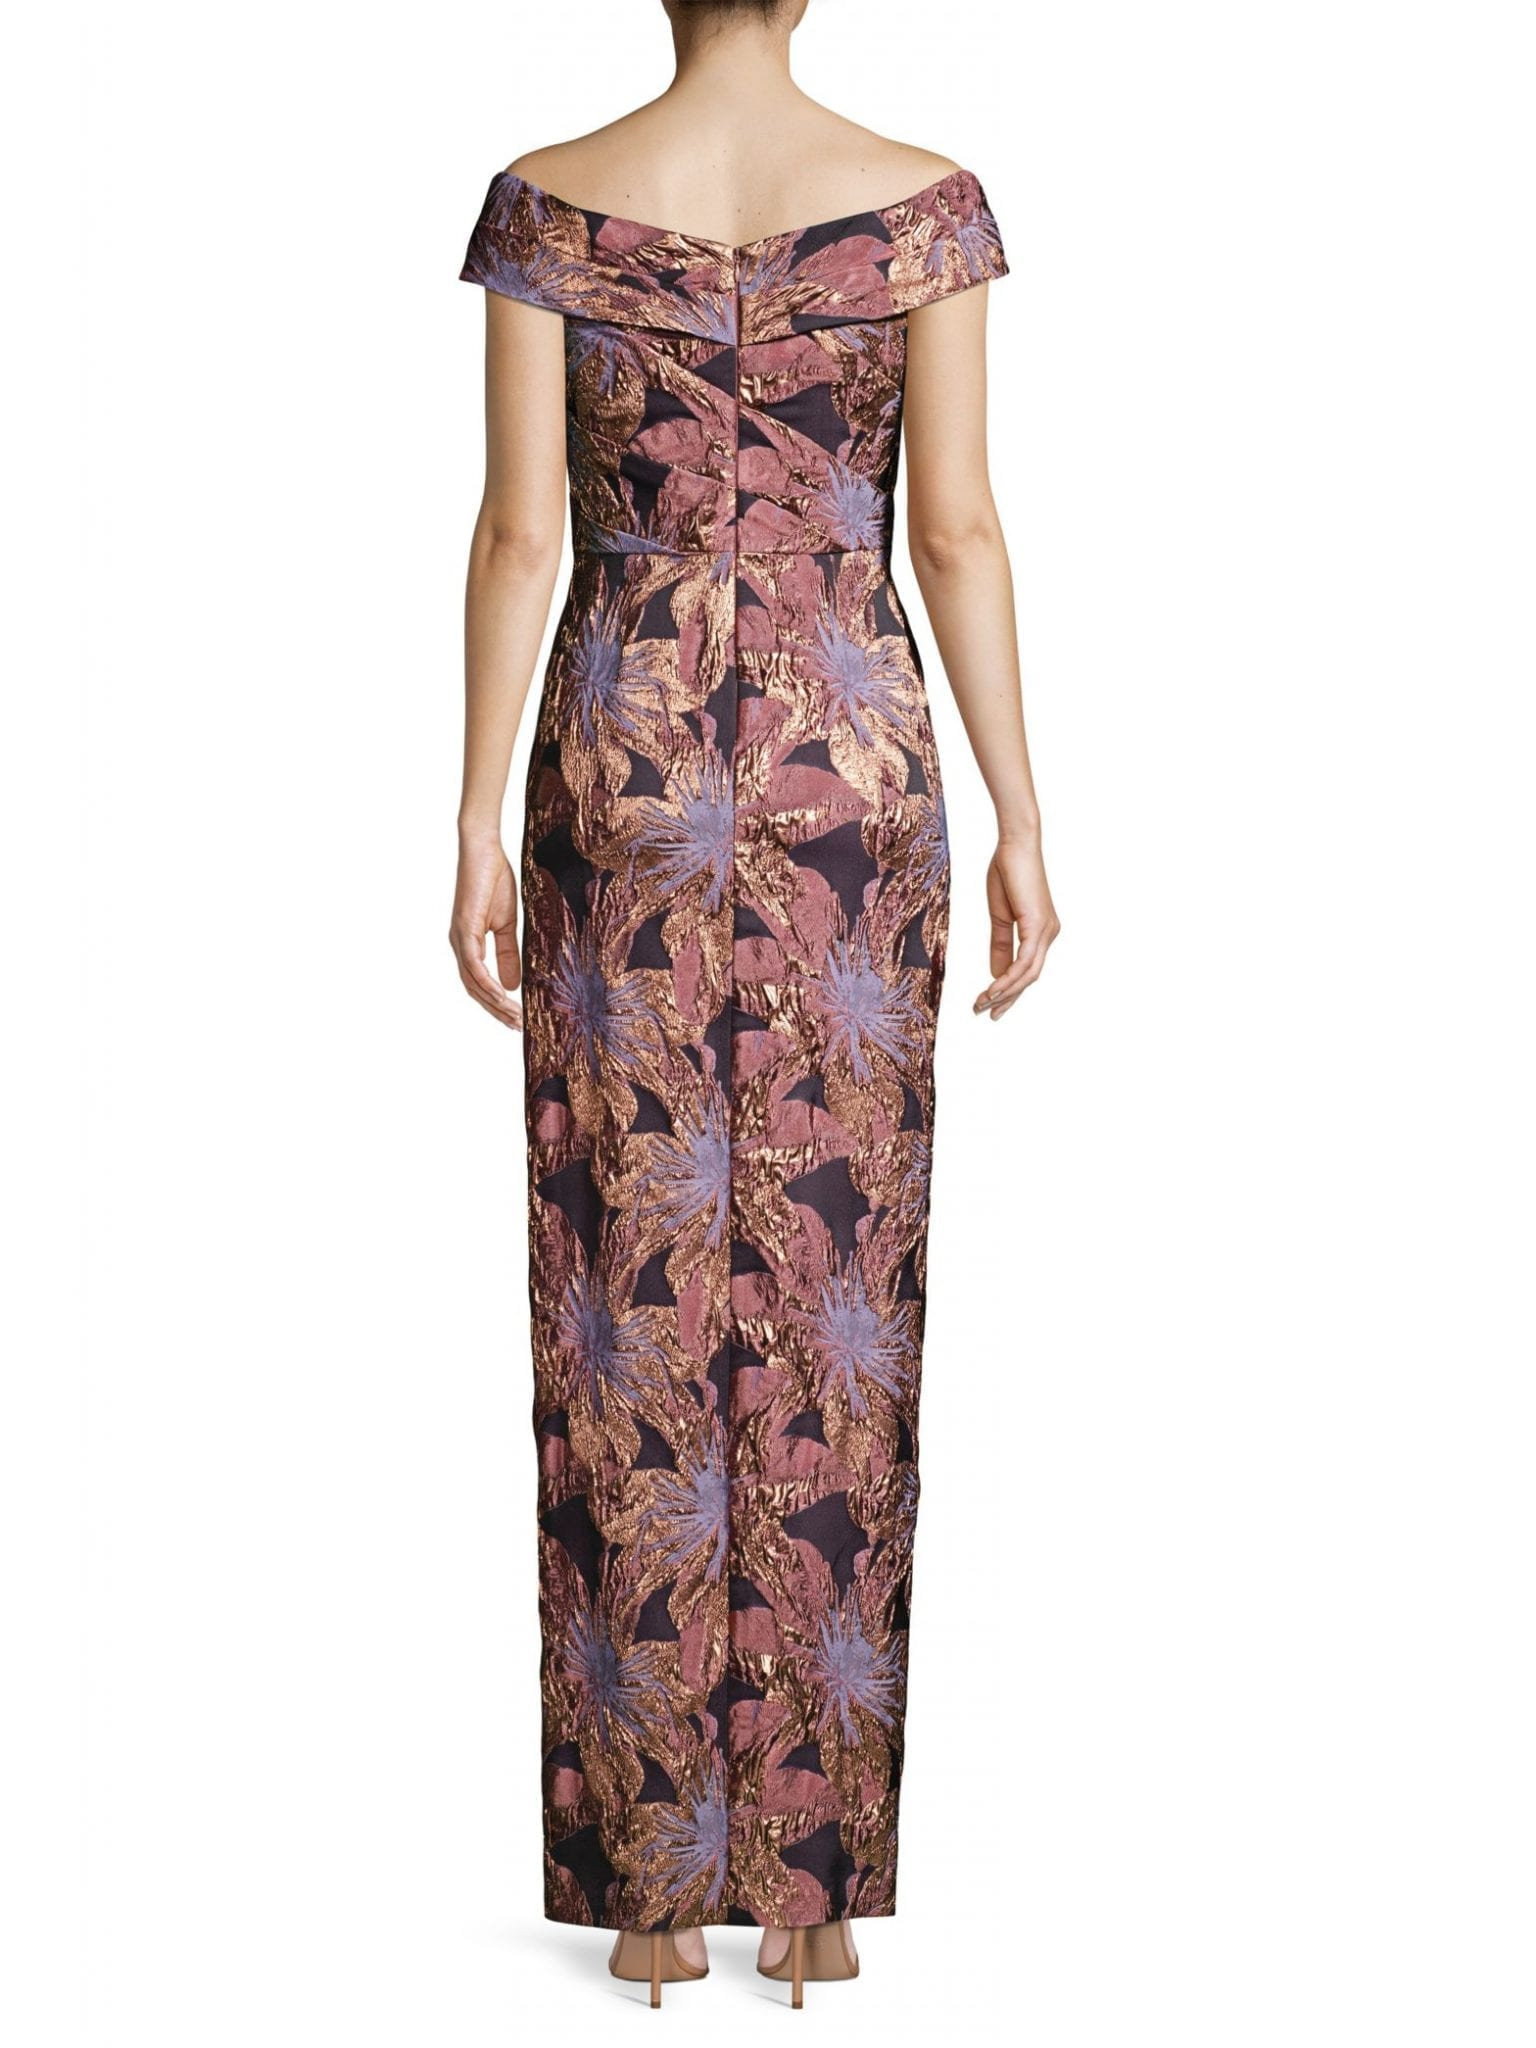 AIDAN MATTOX Floral Jacquard Off-the-Shoulder Ruched Column Gown